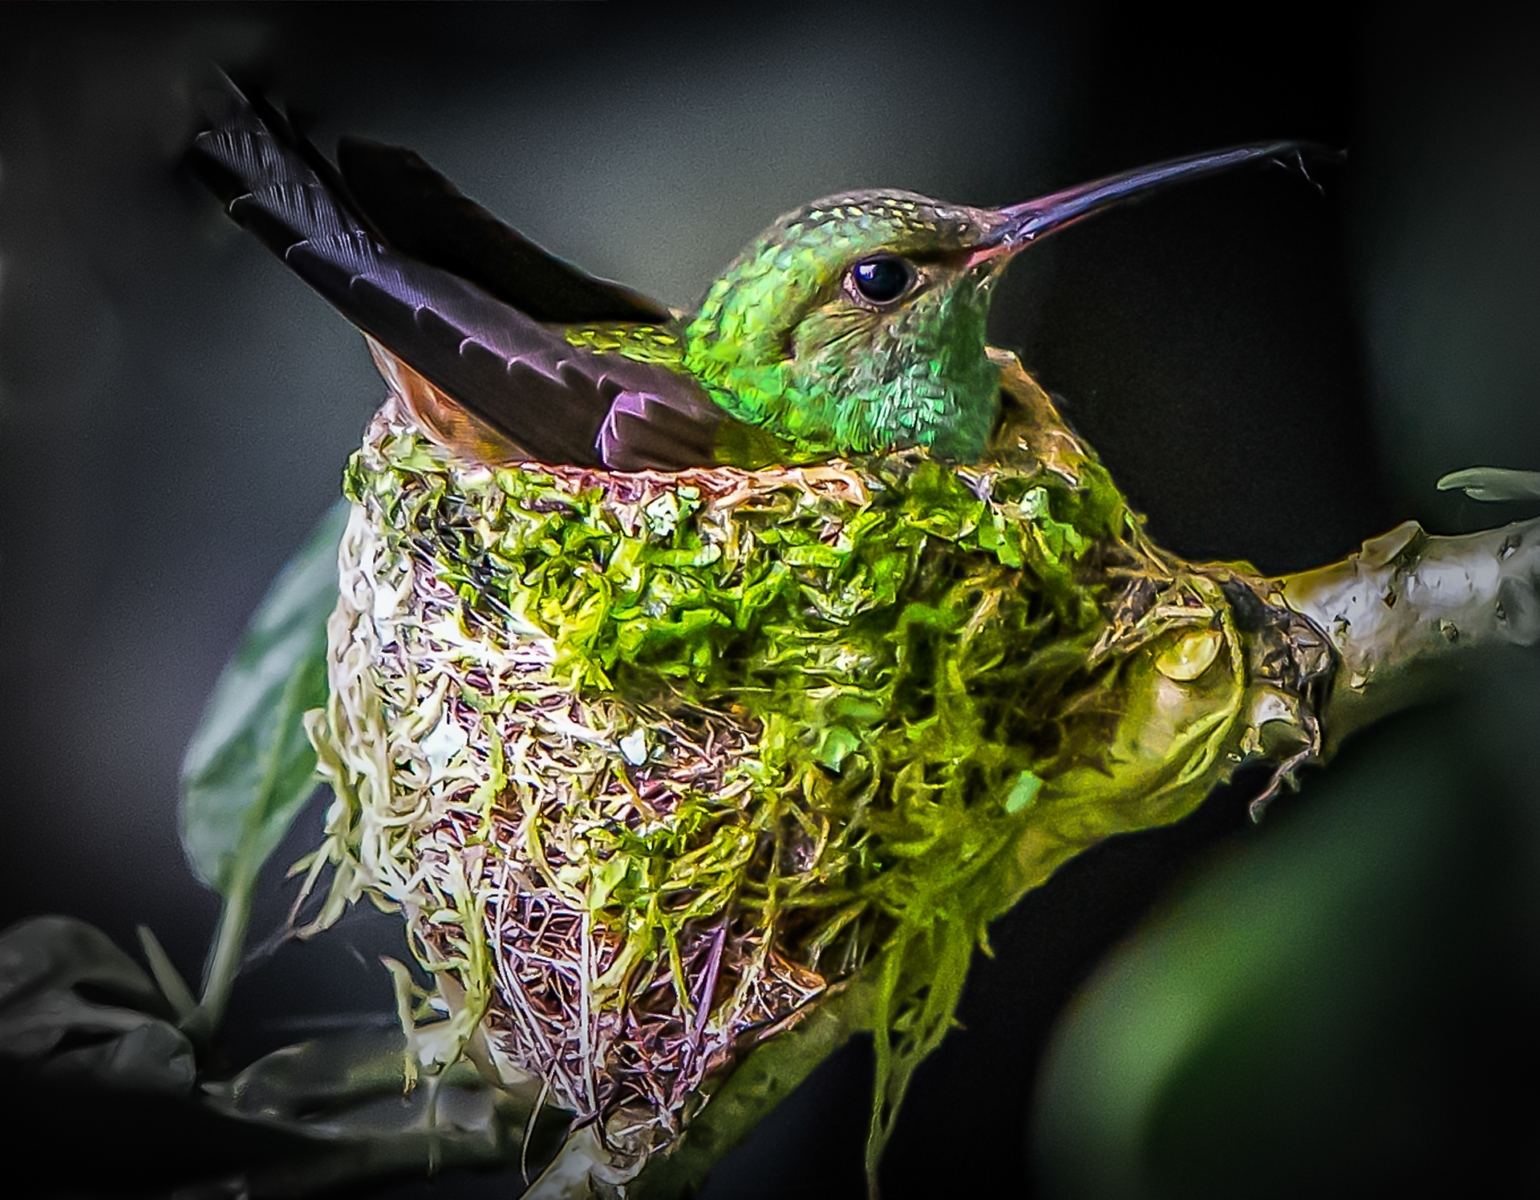 'Mango Hummingbird Nesting' (PA Best in Show) by Ceasar Ricasata - LV